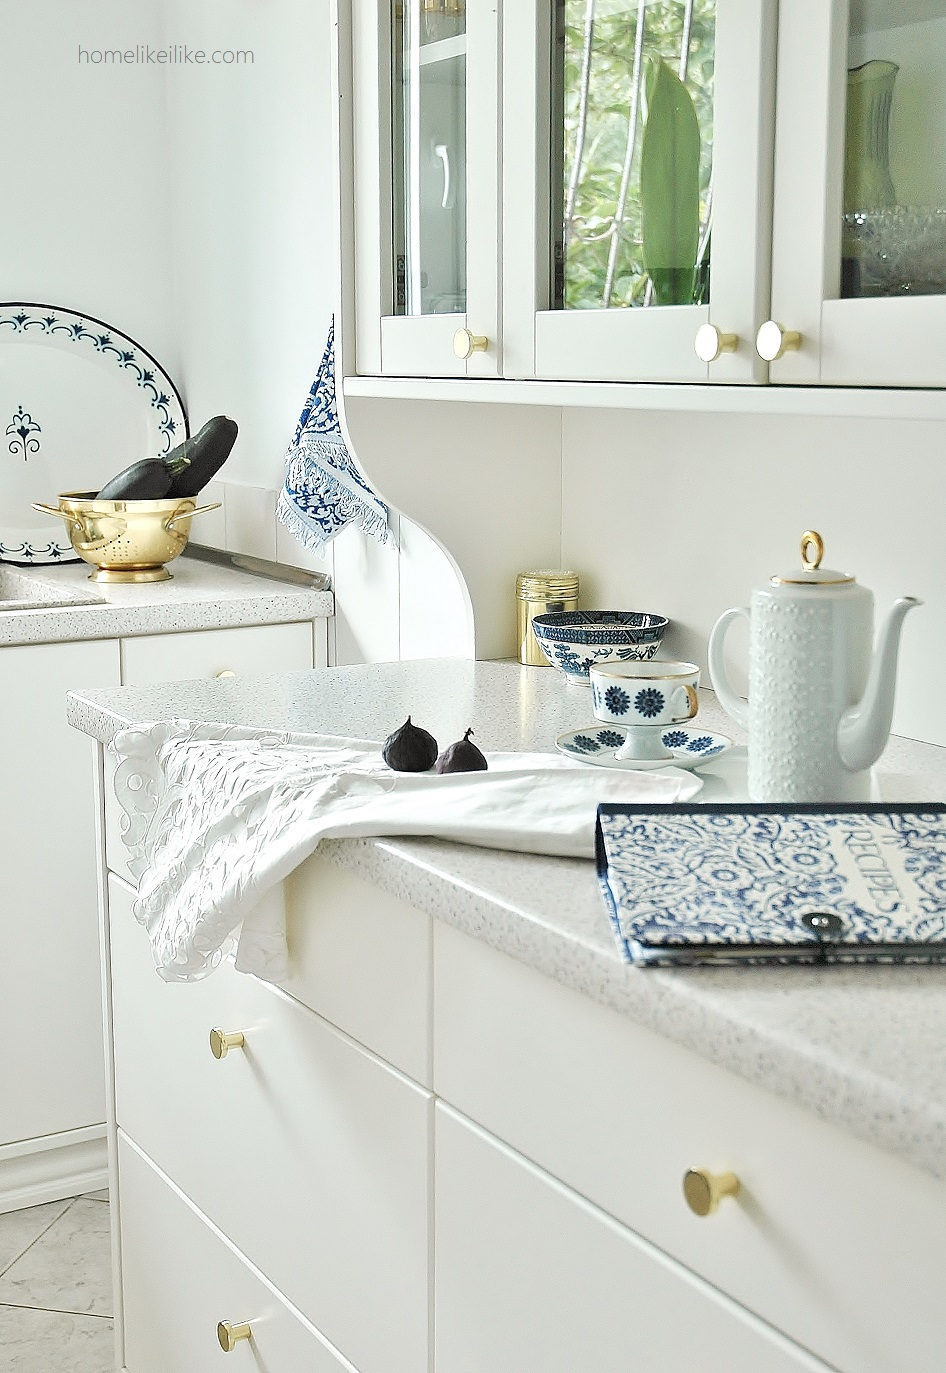 white kitchen - homelikeilike.com